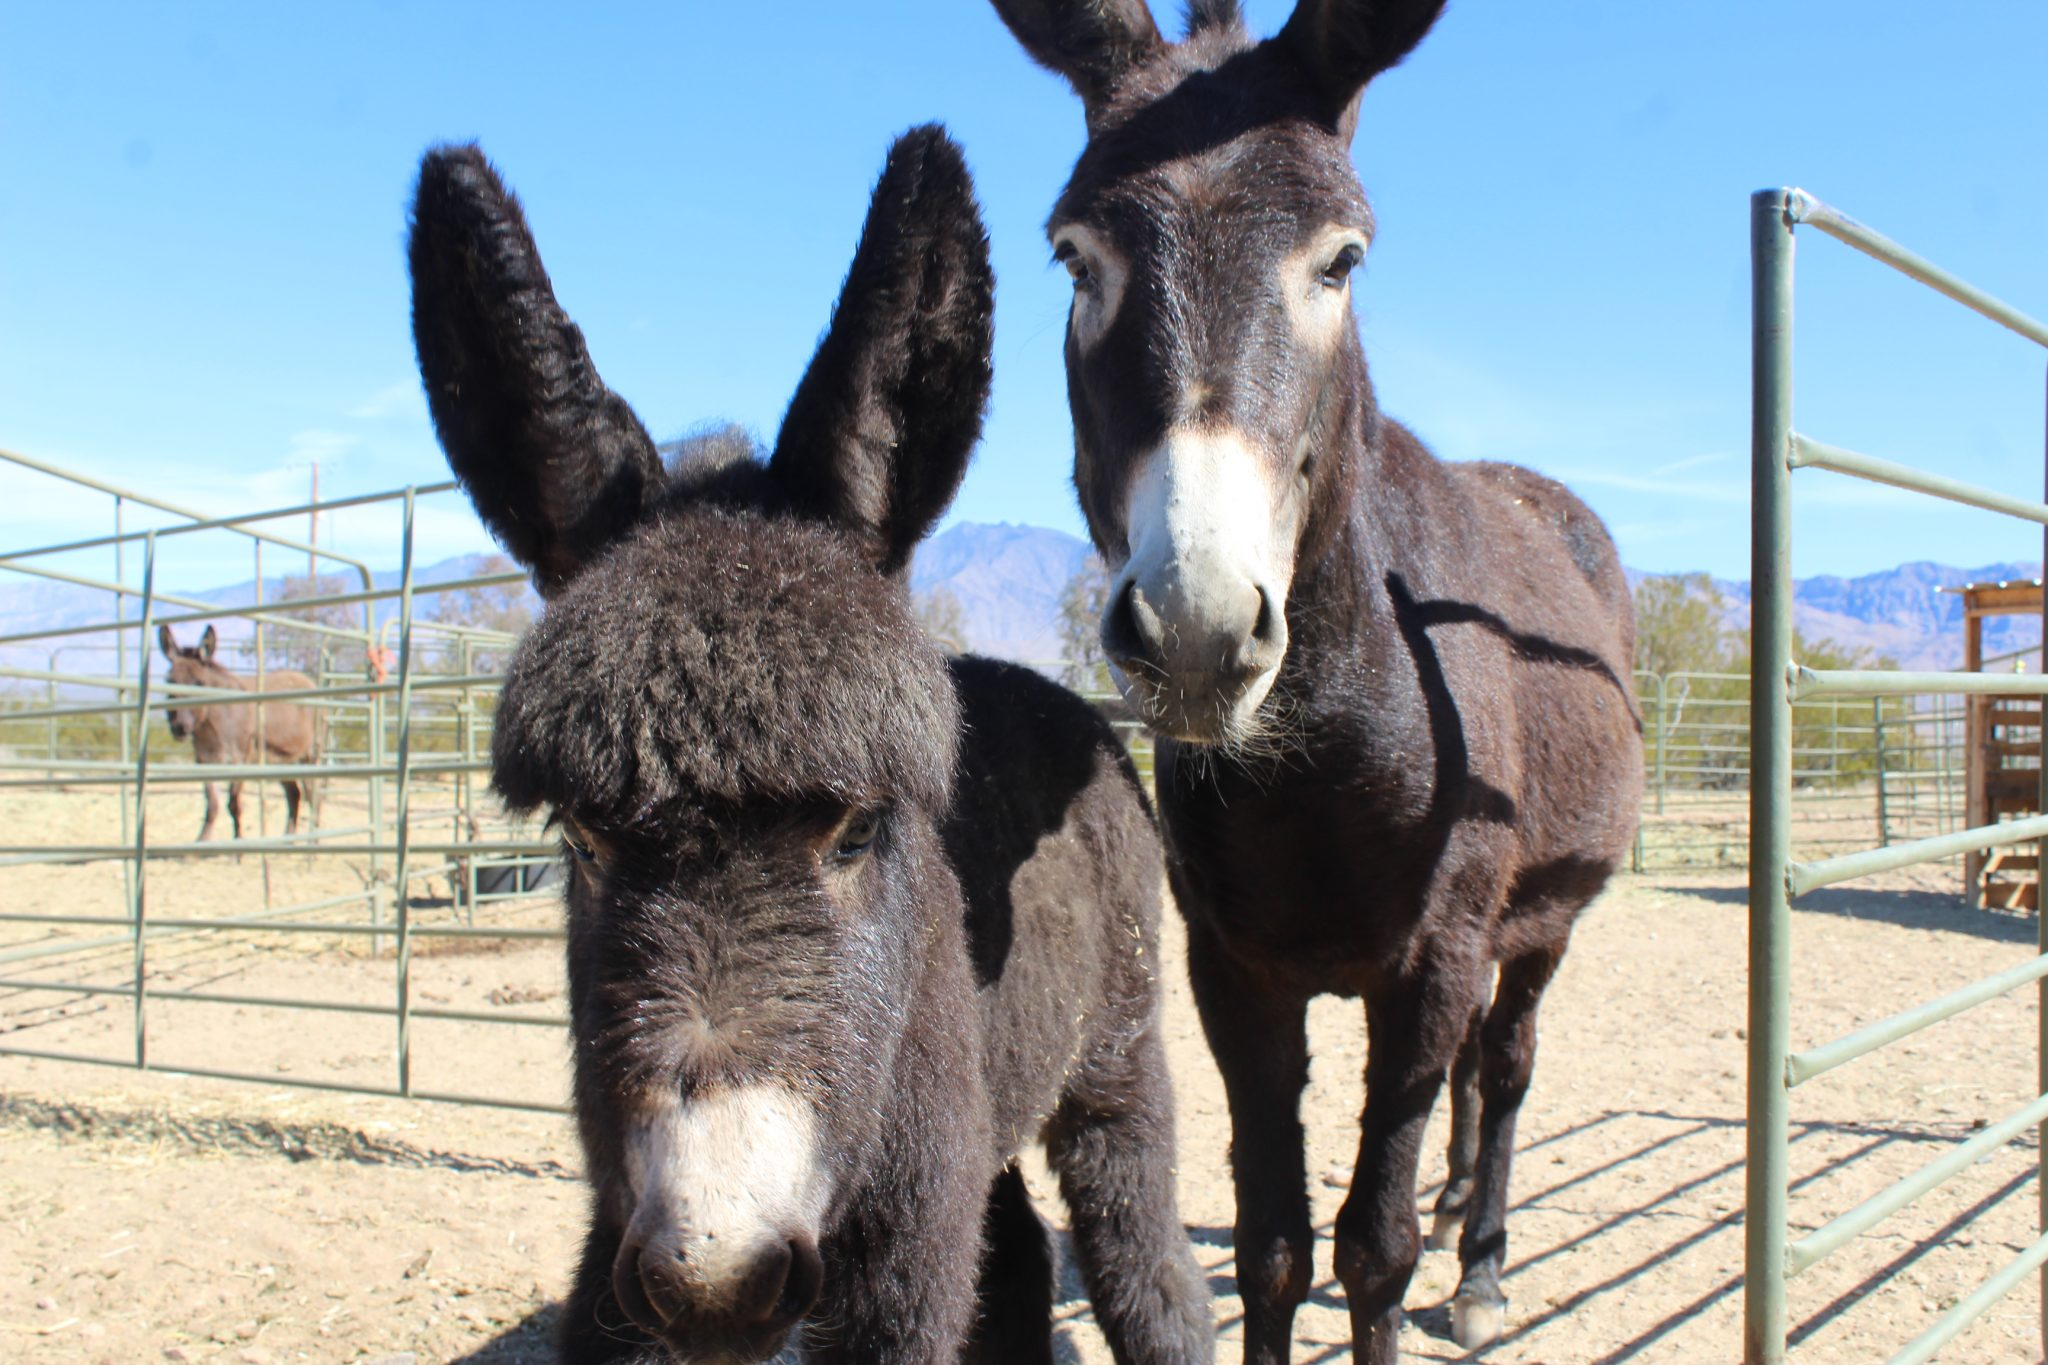 A blustery day for the burros